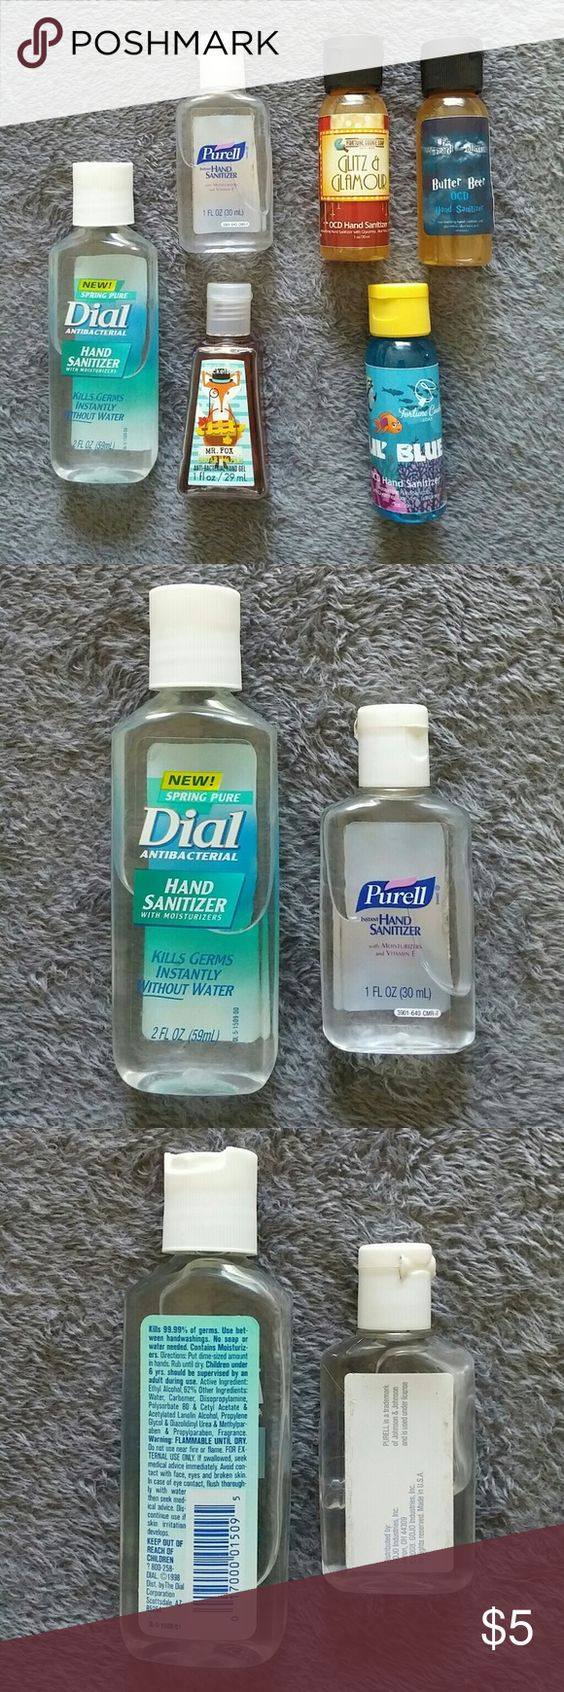 Mini Hand Sanitizer Set Cases This Hand Sanitizer Set Includes